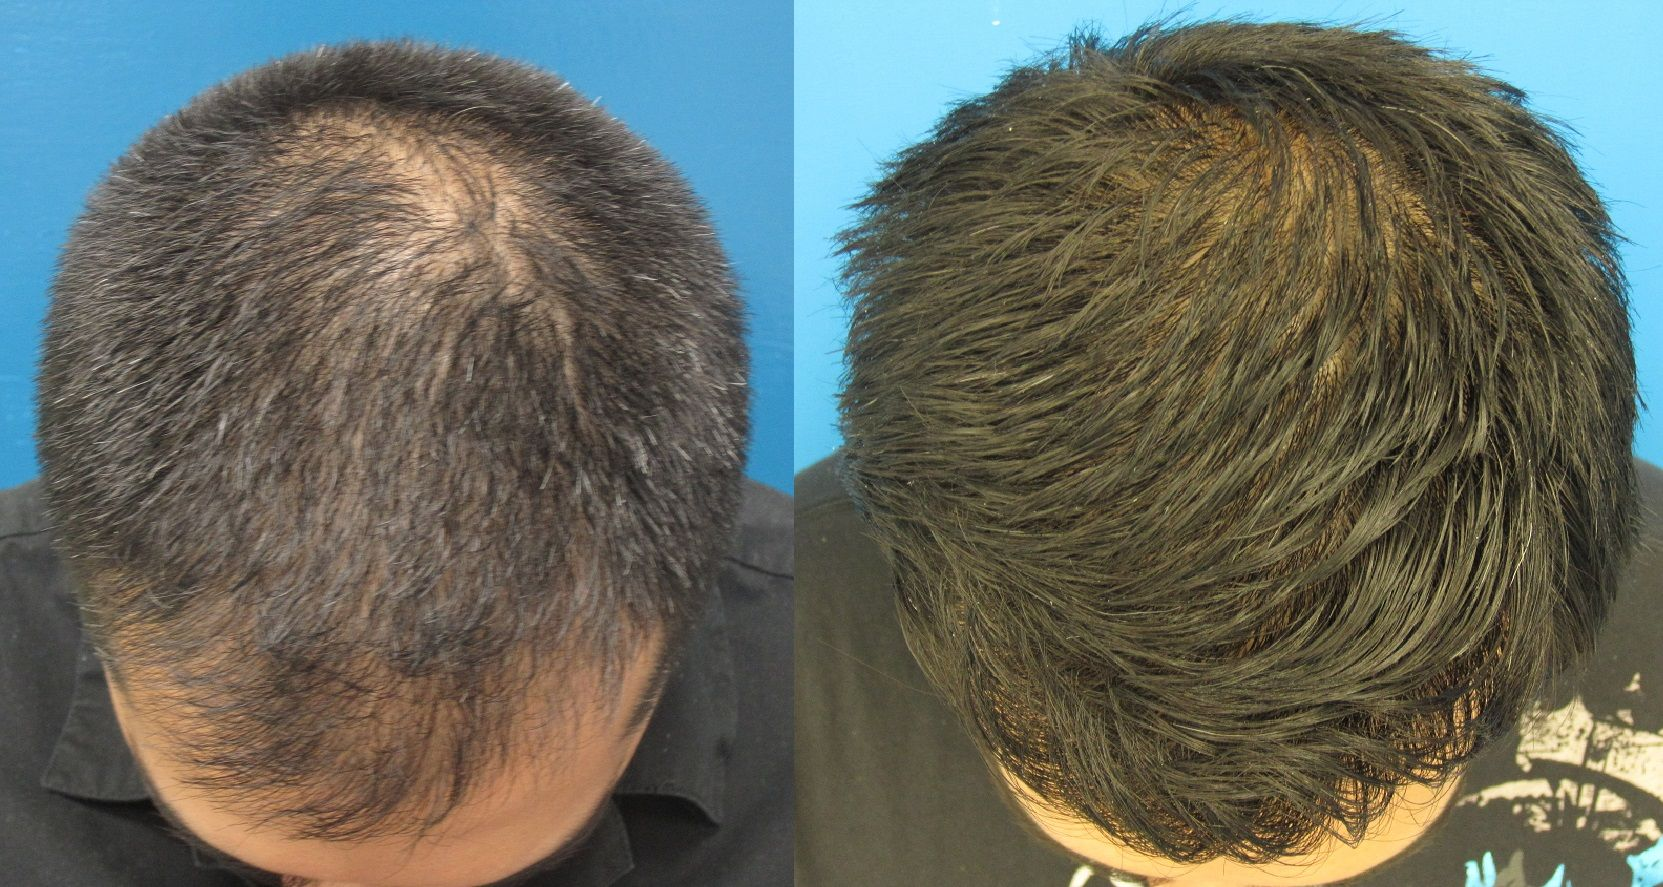 Fut Or Fue Hair Transplantation There Is A Couple Of Methods Available For Hair Transplantation Follicular Unit Extra Hair Laser Growth New Hair Hair Growth